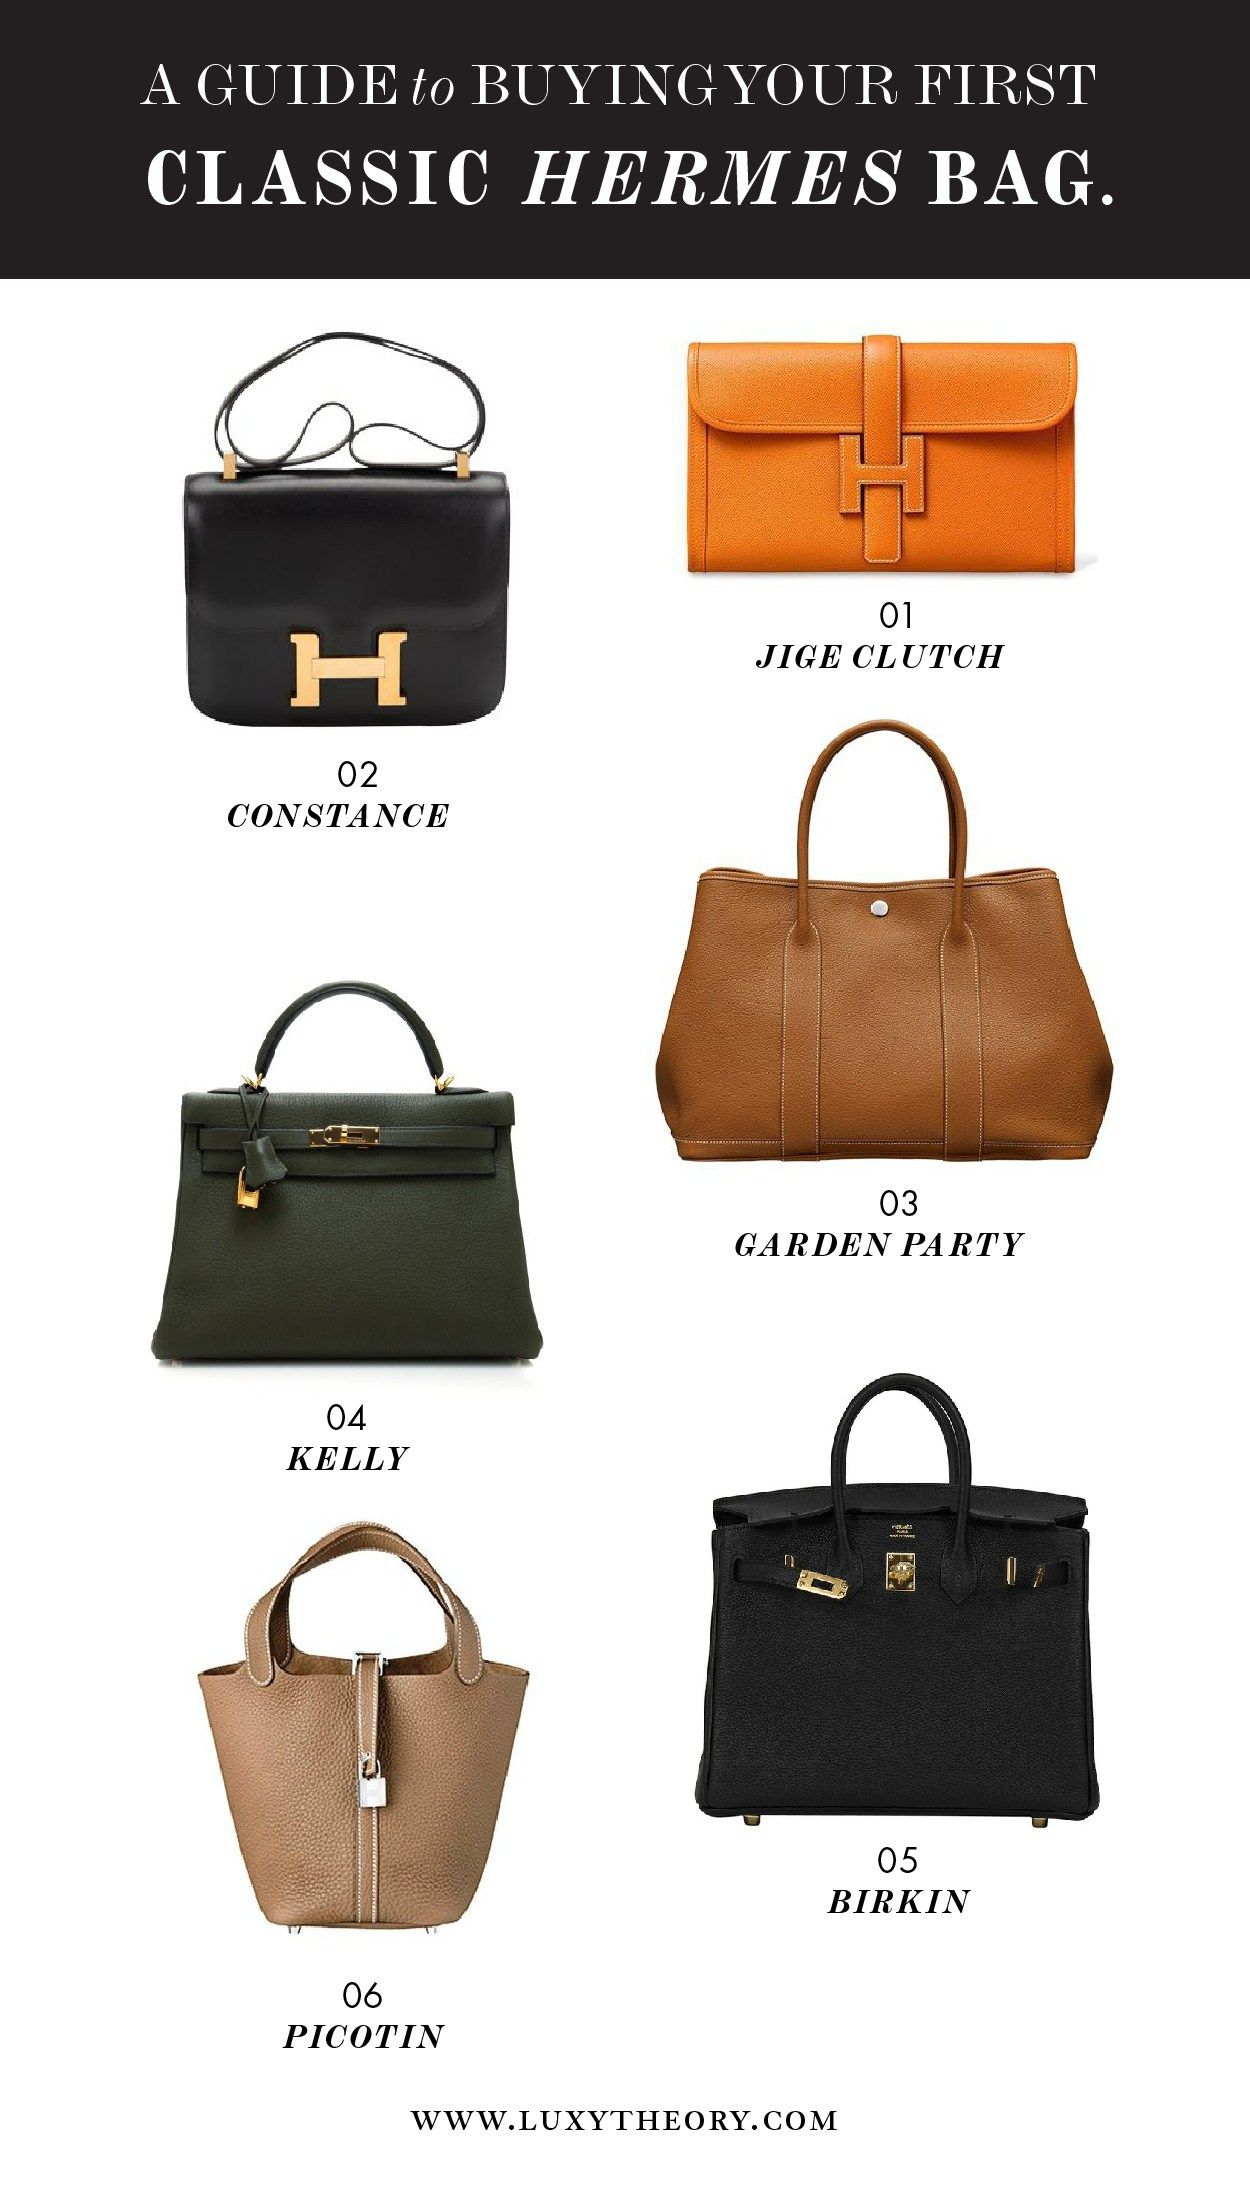 841f49af57 Your Guide to Buying Your First Classic Hermes Bag ( it doesn t have to be  a birkin ) - Luxy Theory Constance    Jige Clutch    Kelly    Garden Party  ...